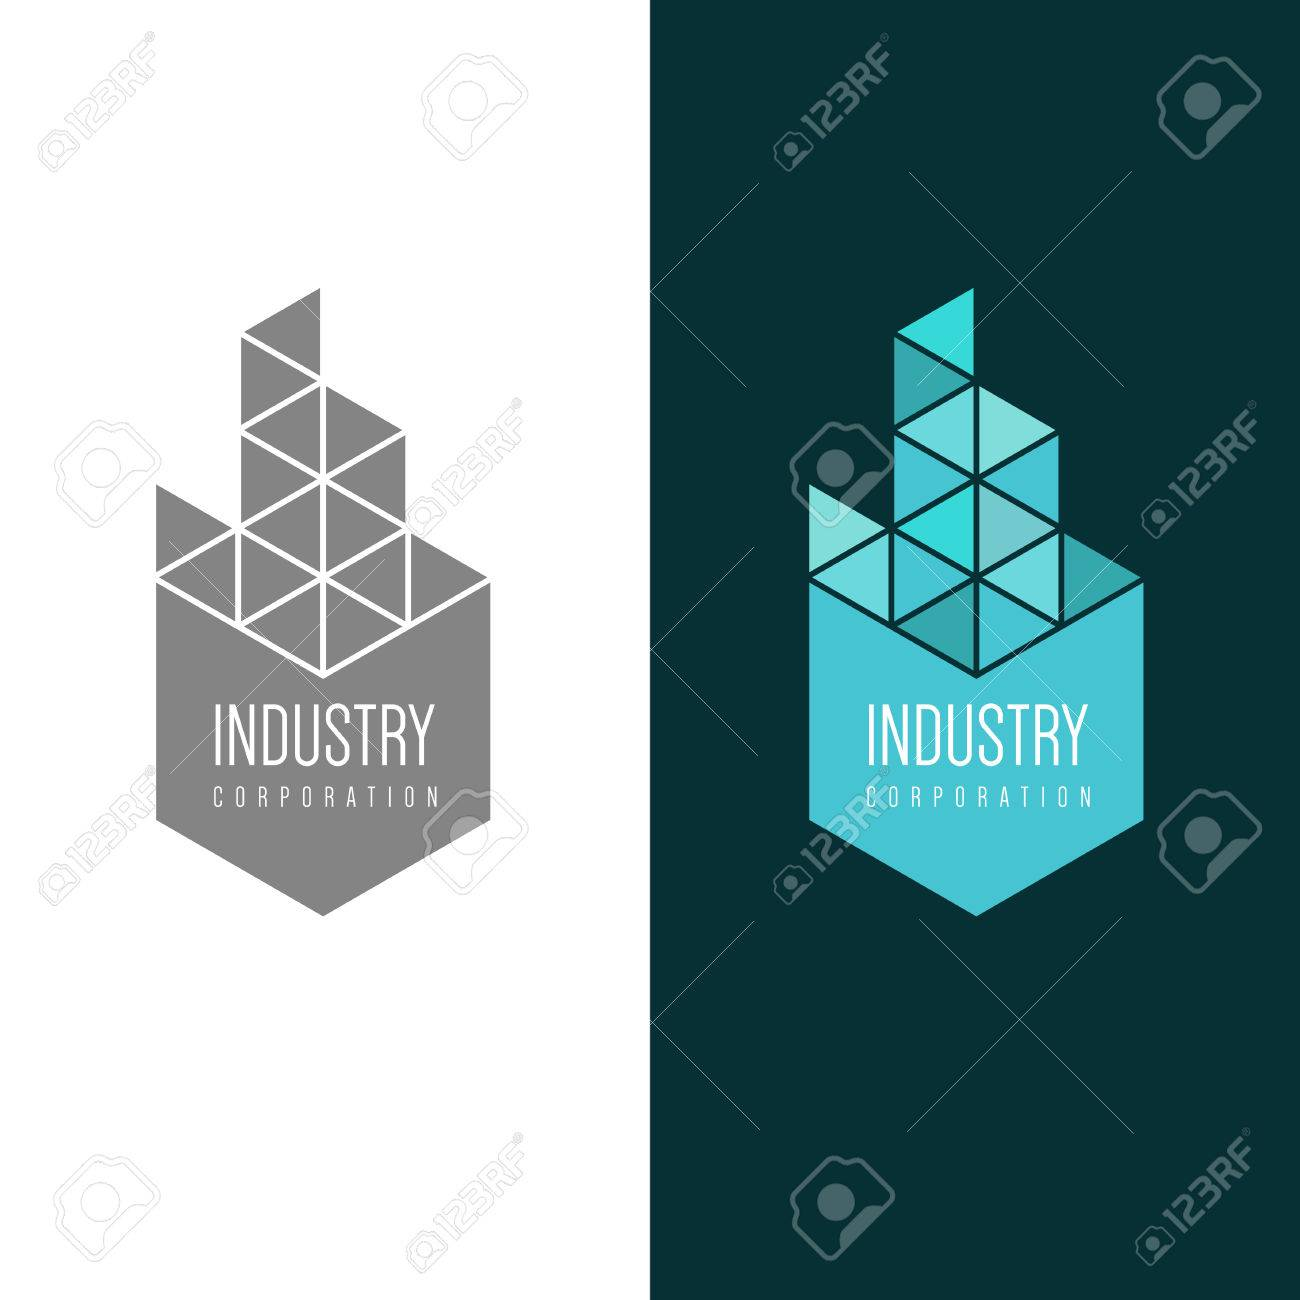 logo inspiration for construction companies, real estate agencies